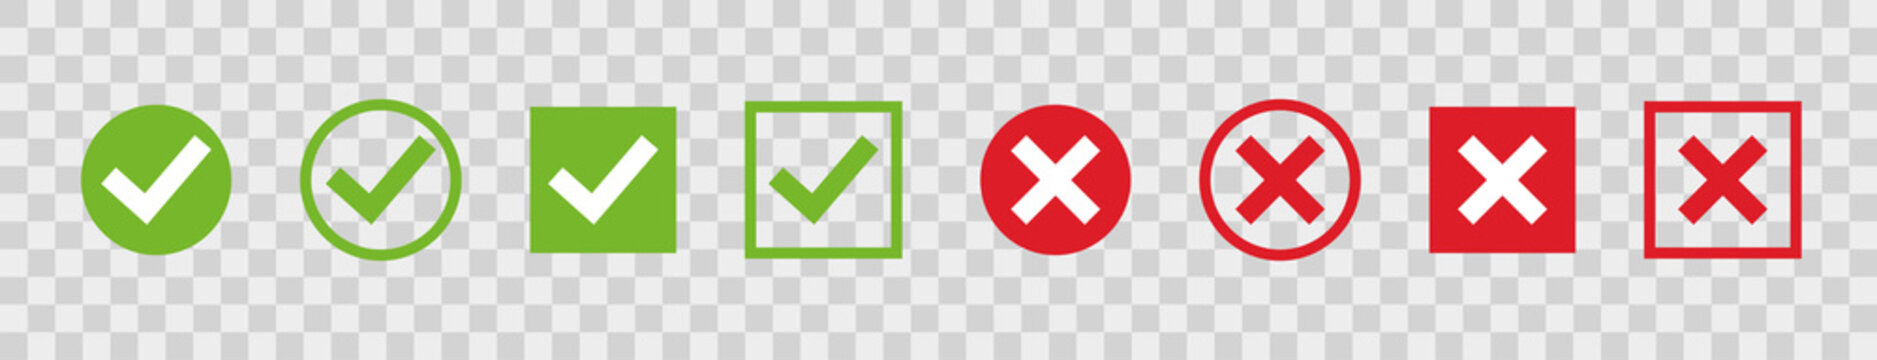 Set green check marks and red crosses of simple web buttons. Circle and square. Large collection of flat buttons. Vector illustration.